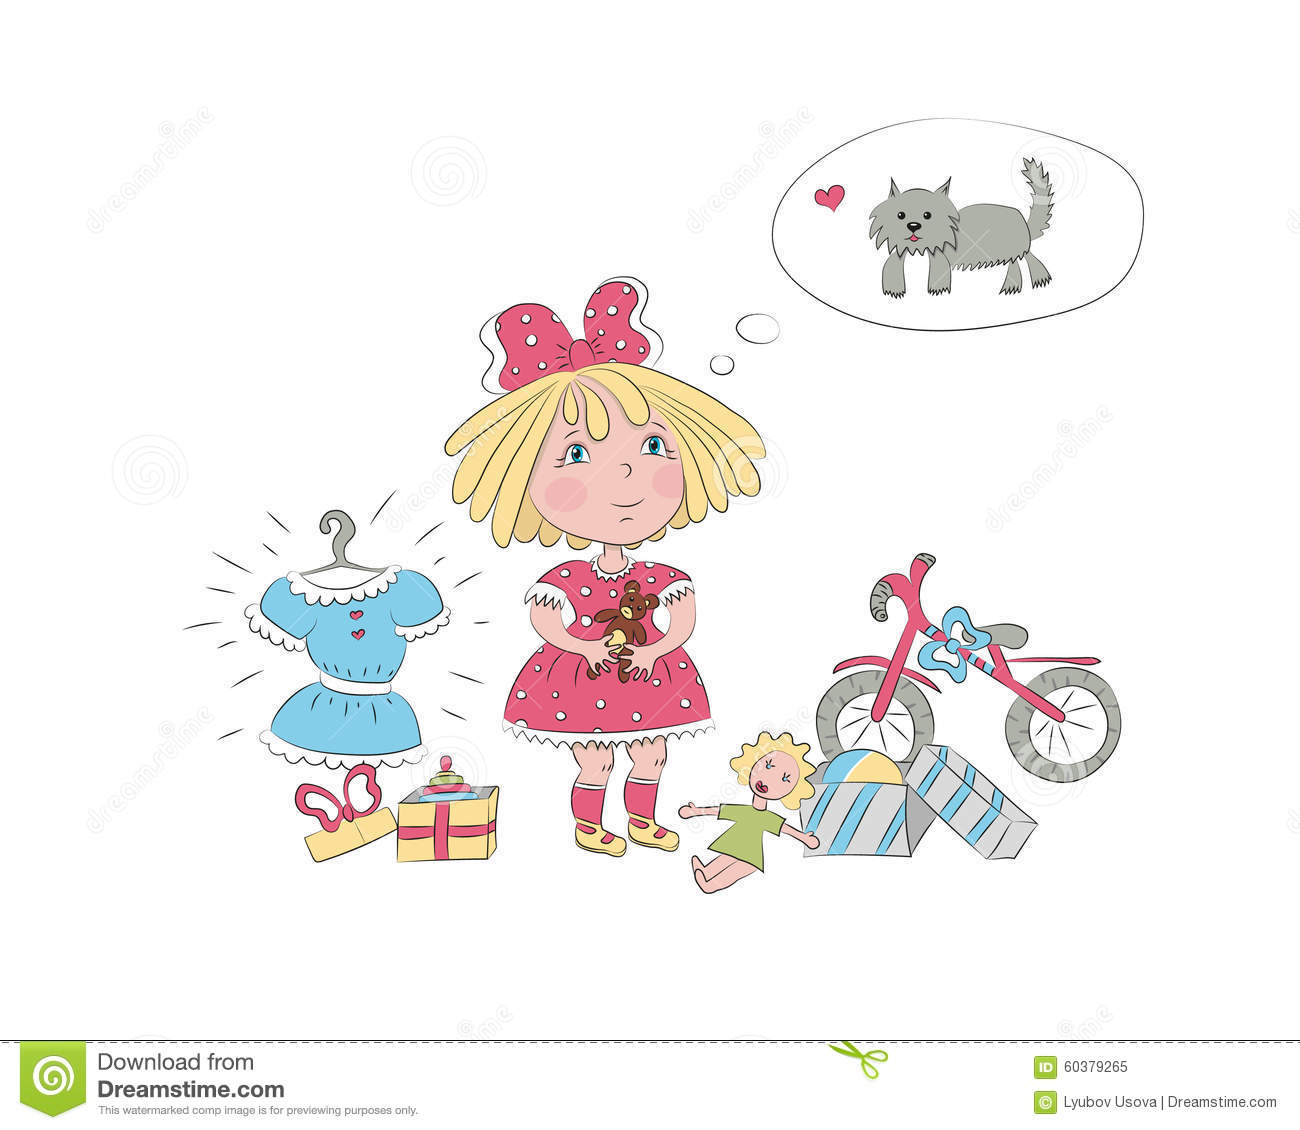 Little Girl Toys : A little girl surrounded by toys dream about the dog stock